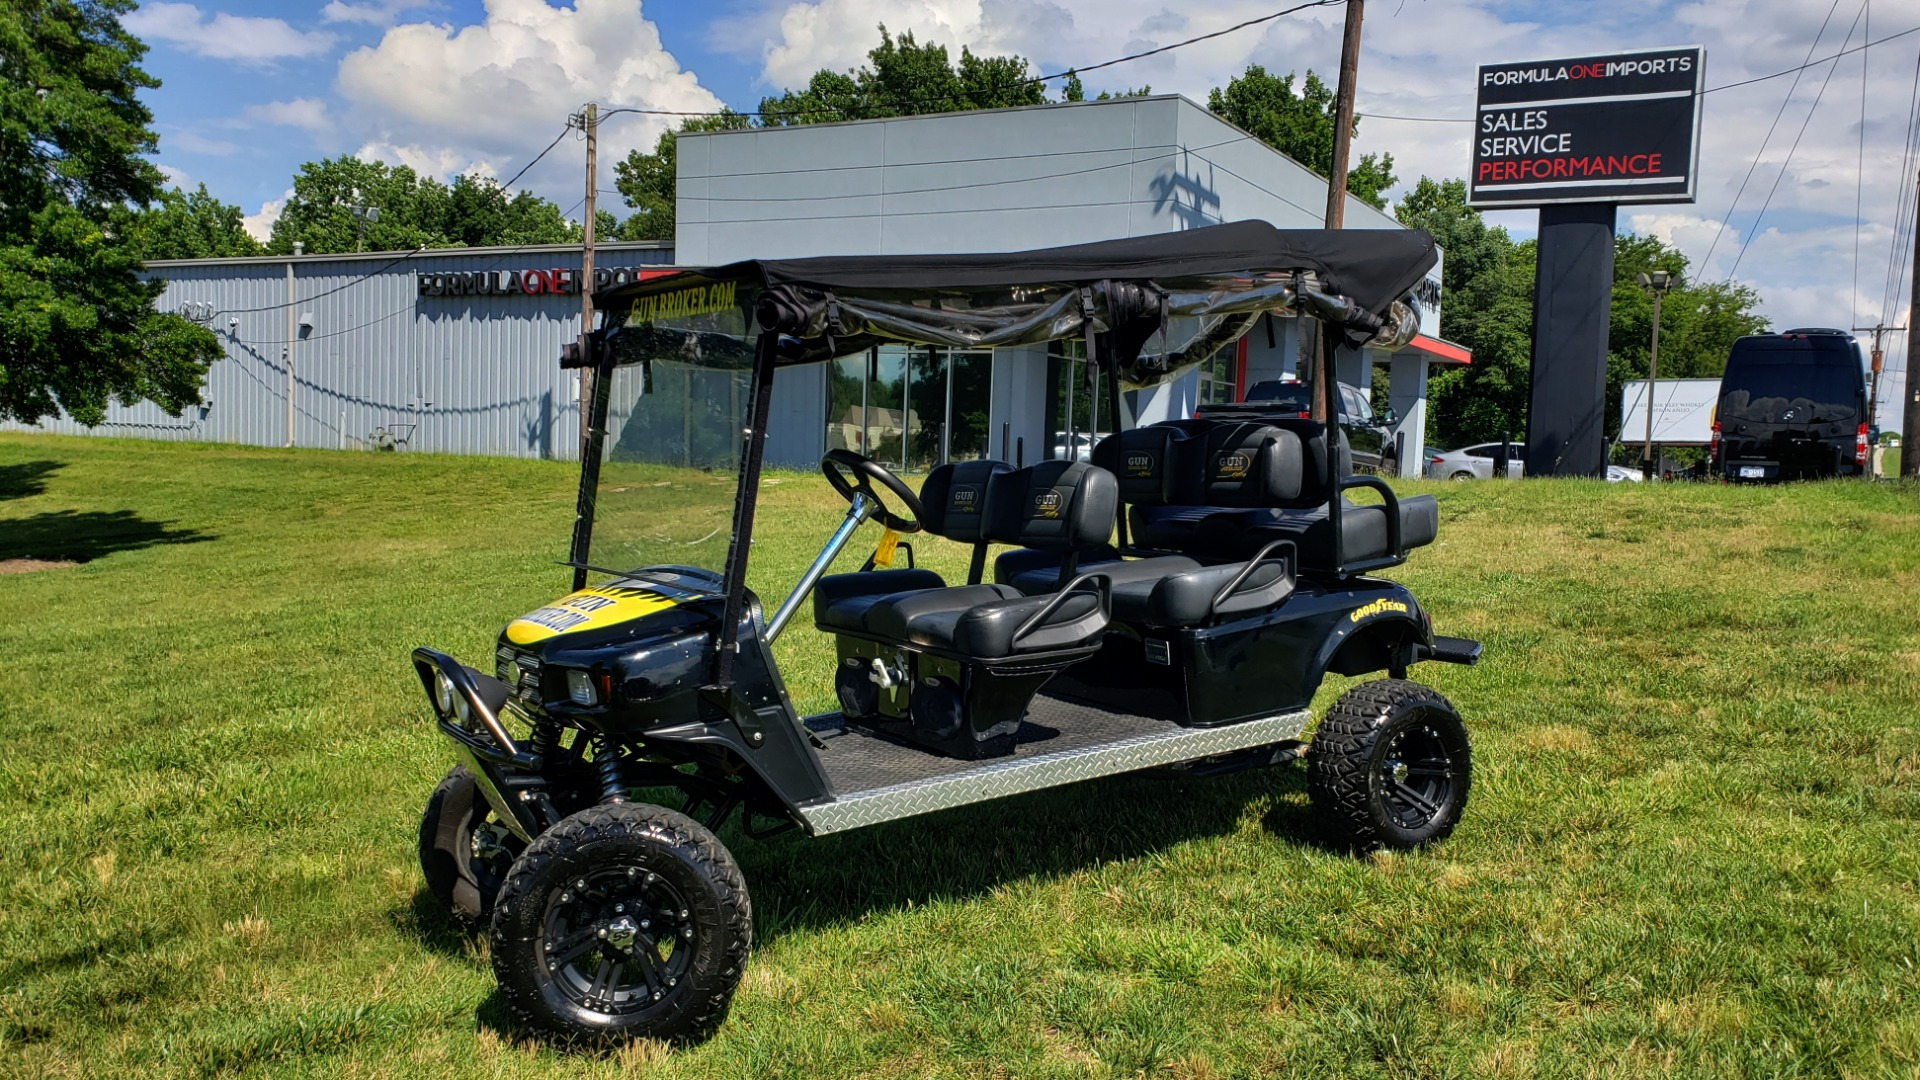 Used 2010 E-Z-GO GOLF CART 24HP / 3-ROW SEATING FOR 6 / SUSPENSION LIFT / SONY STEREO for sale $16,995 at Formula Imports in Charlotte NC 28227 1